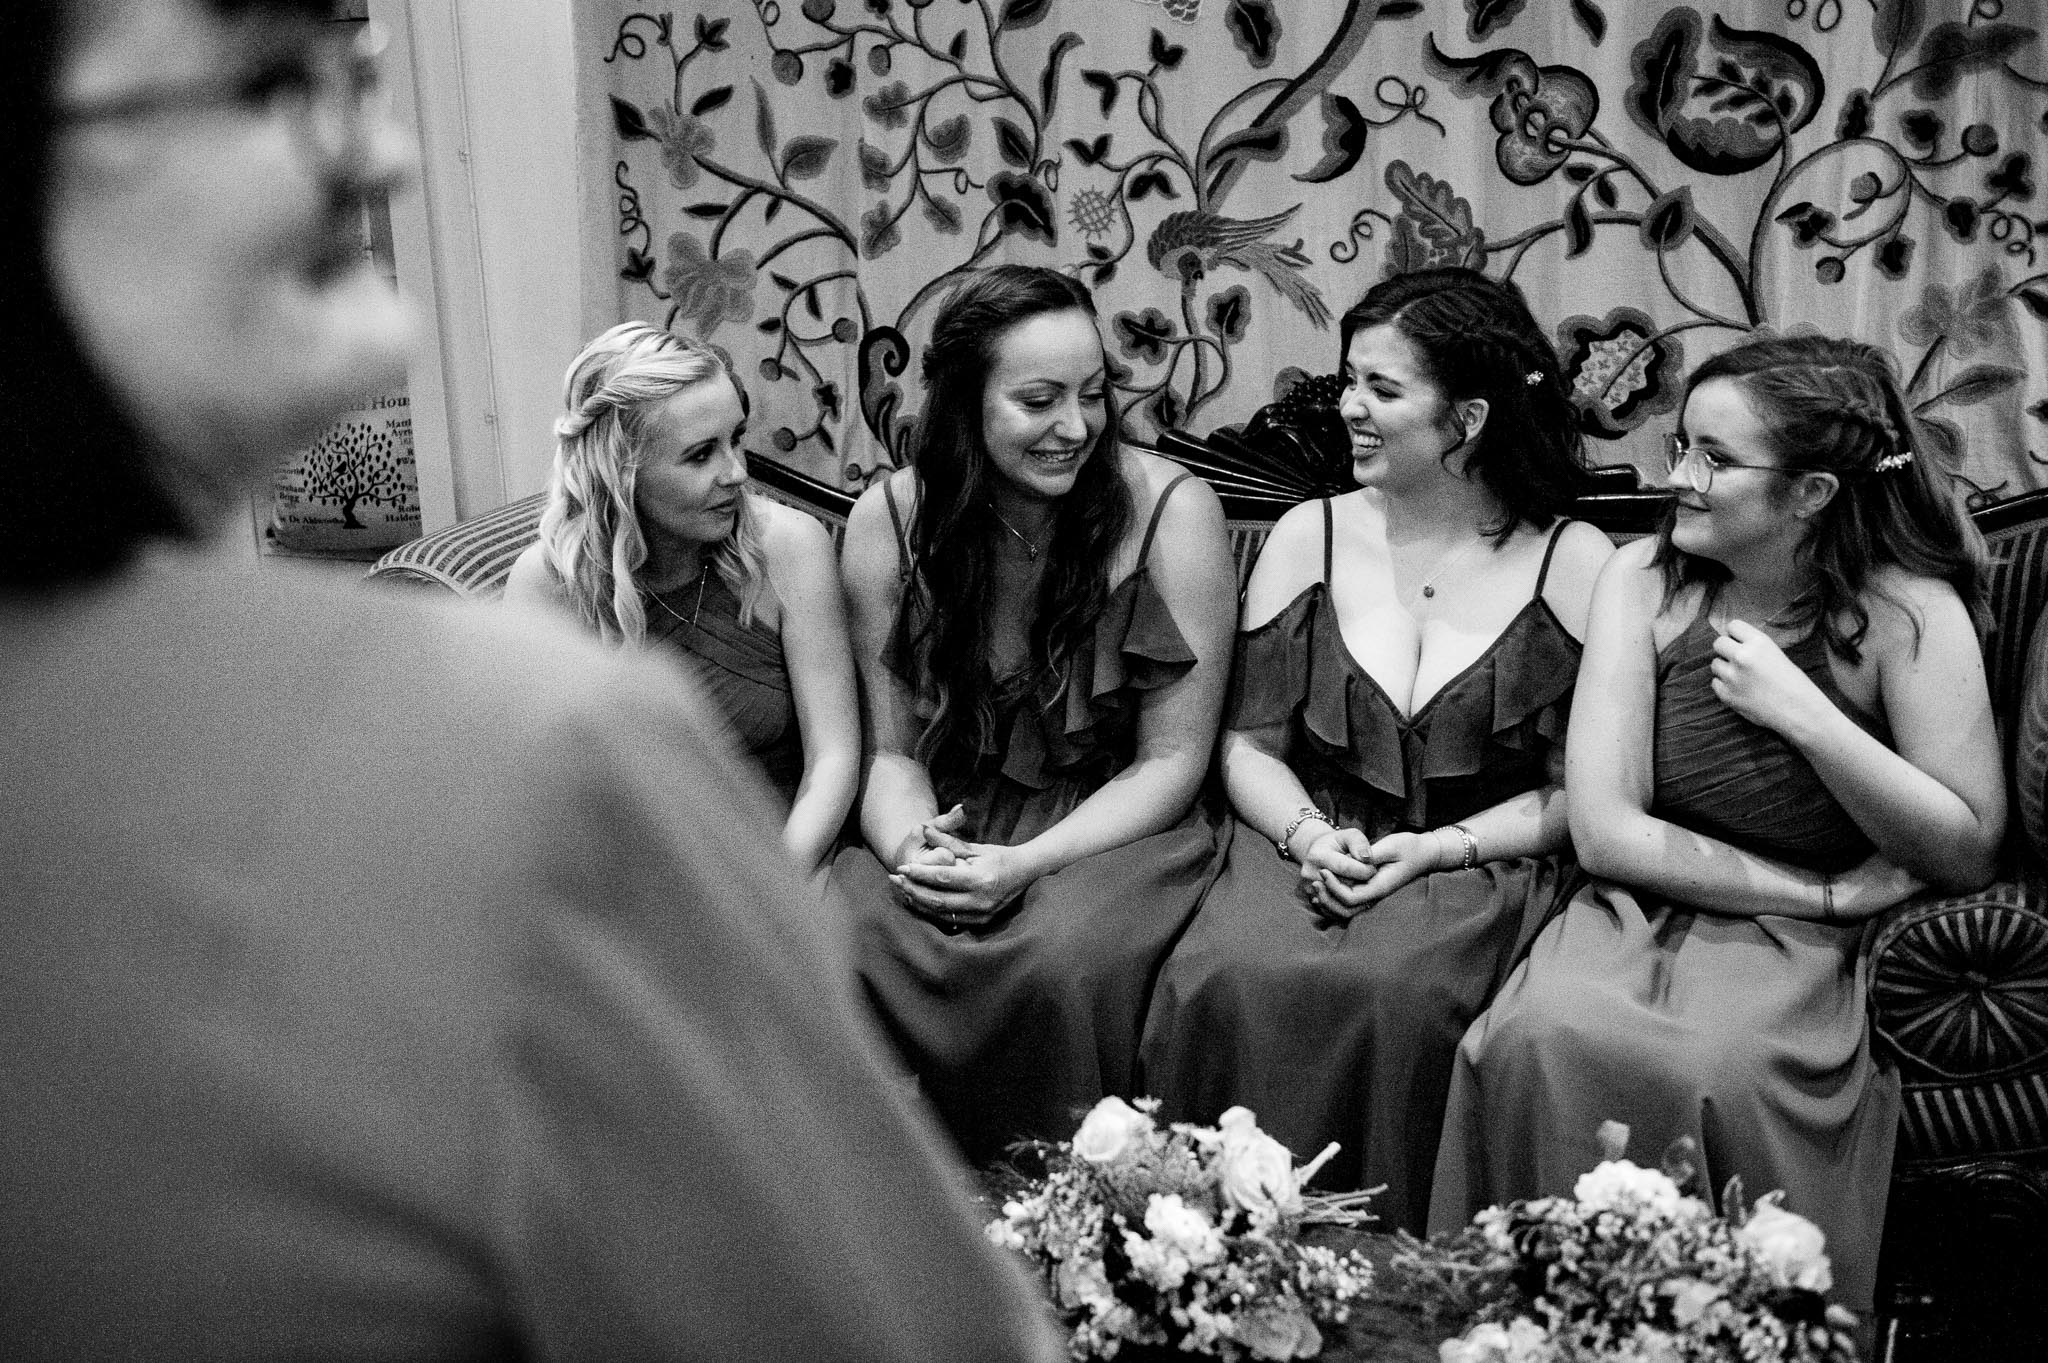 The bridesmaids have a laugh and a giggle before the ceremony begins